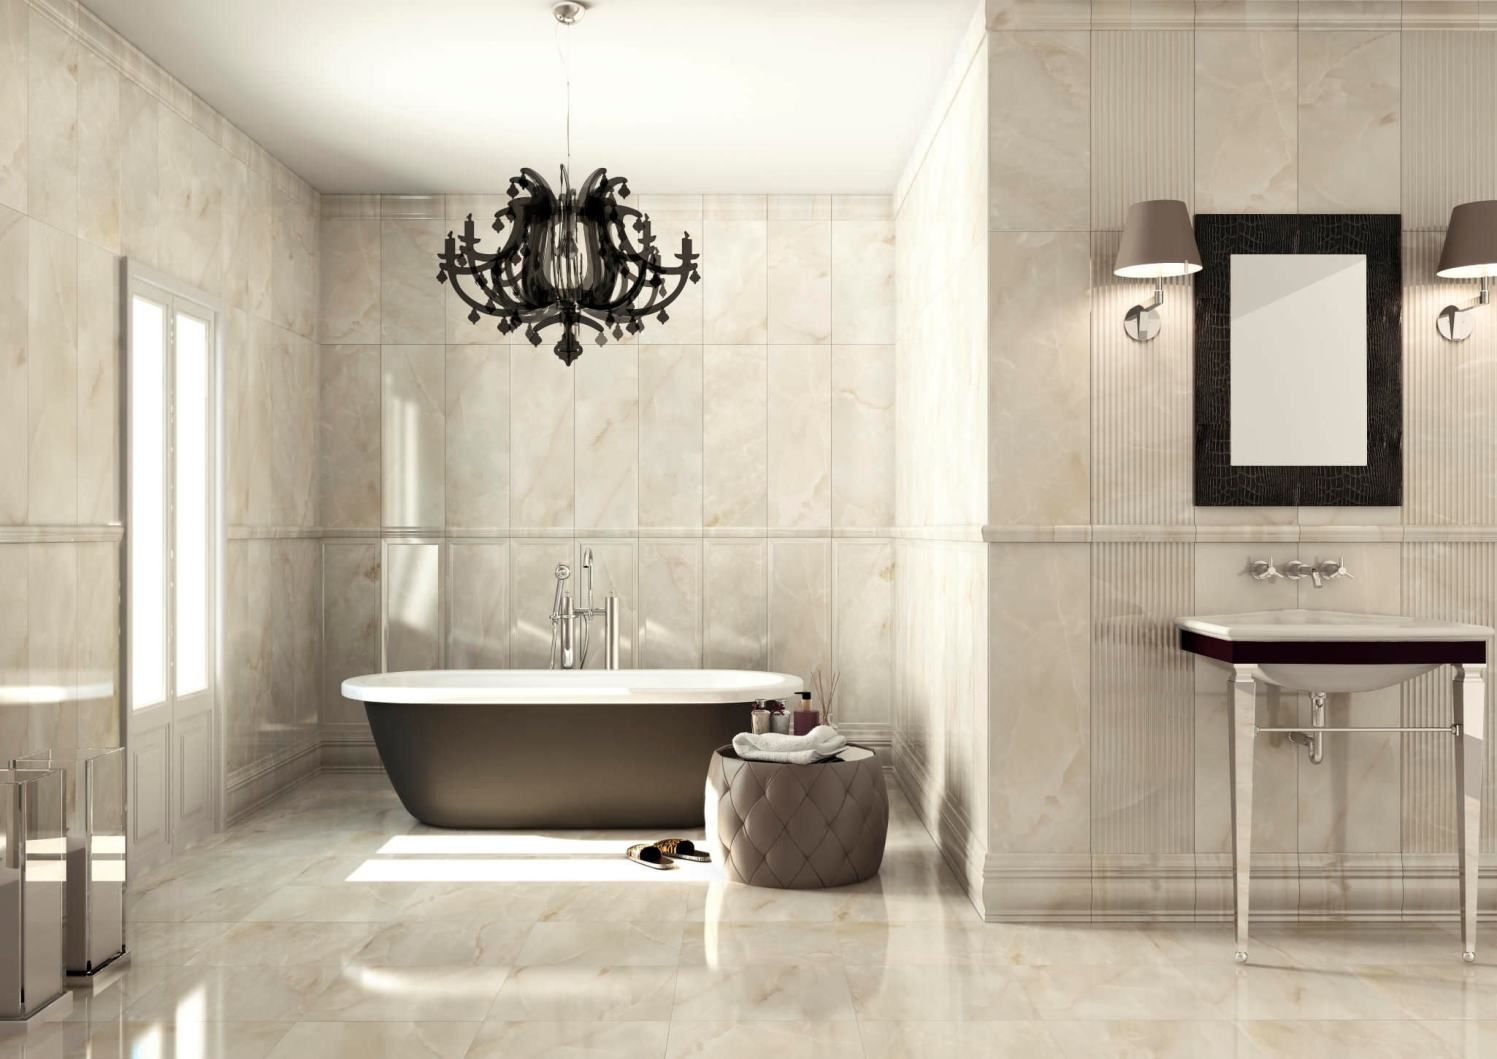 Best Mosaic Bathroom Floor Tiles Ideas And Tips You Will Read This Year